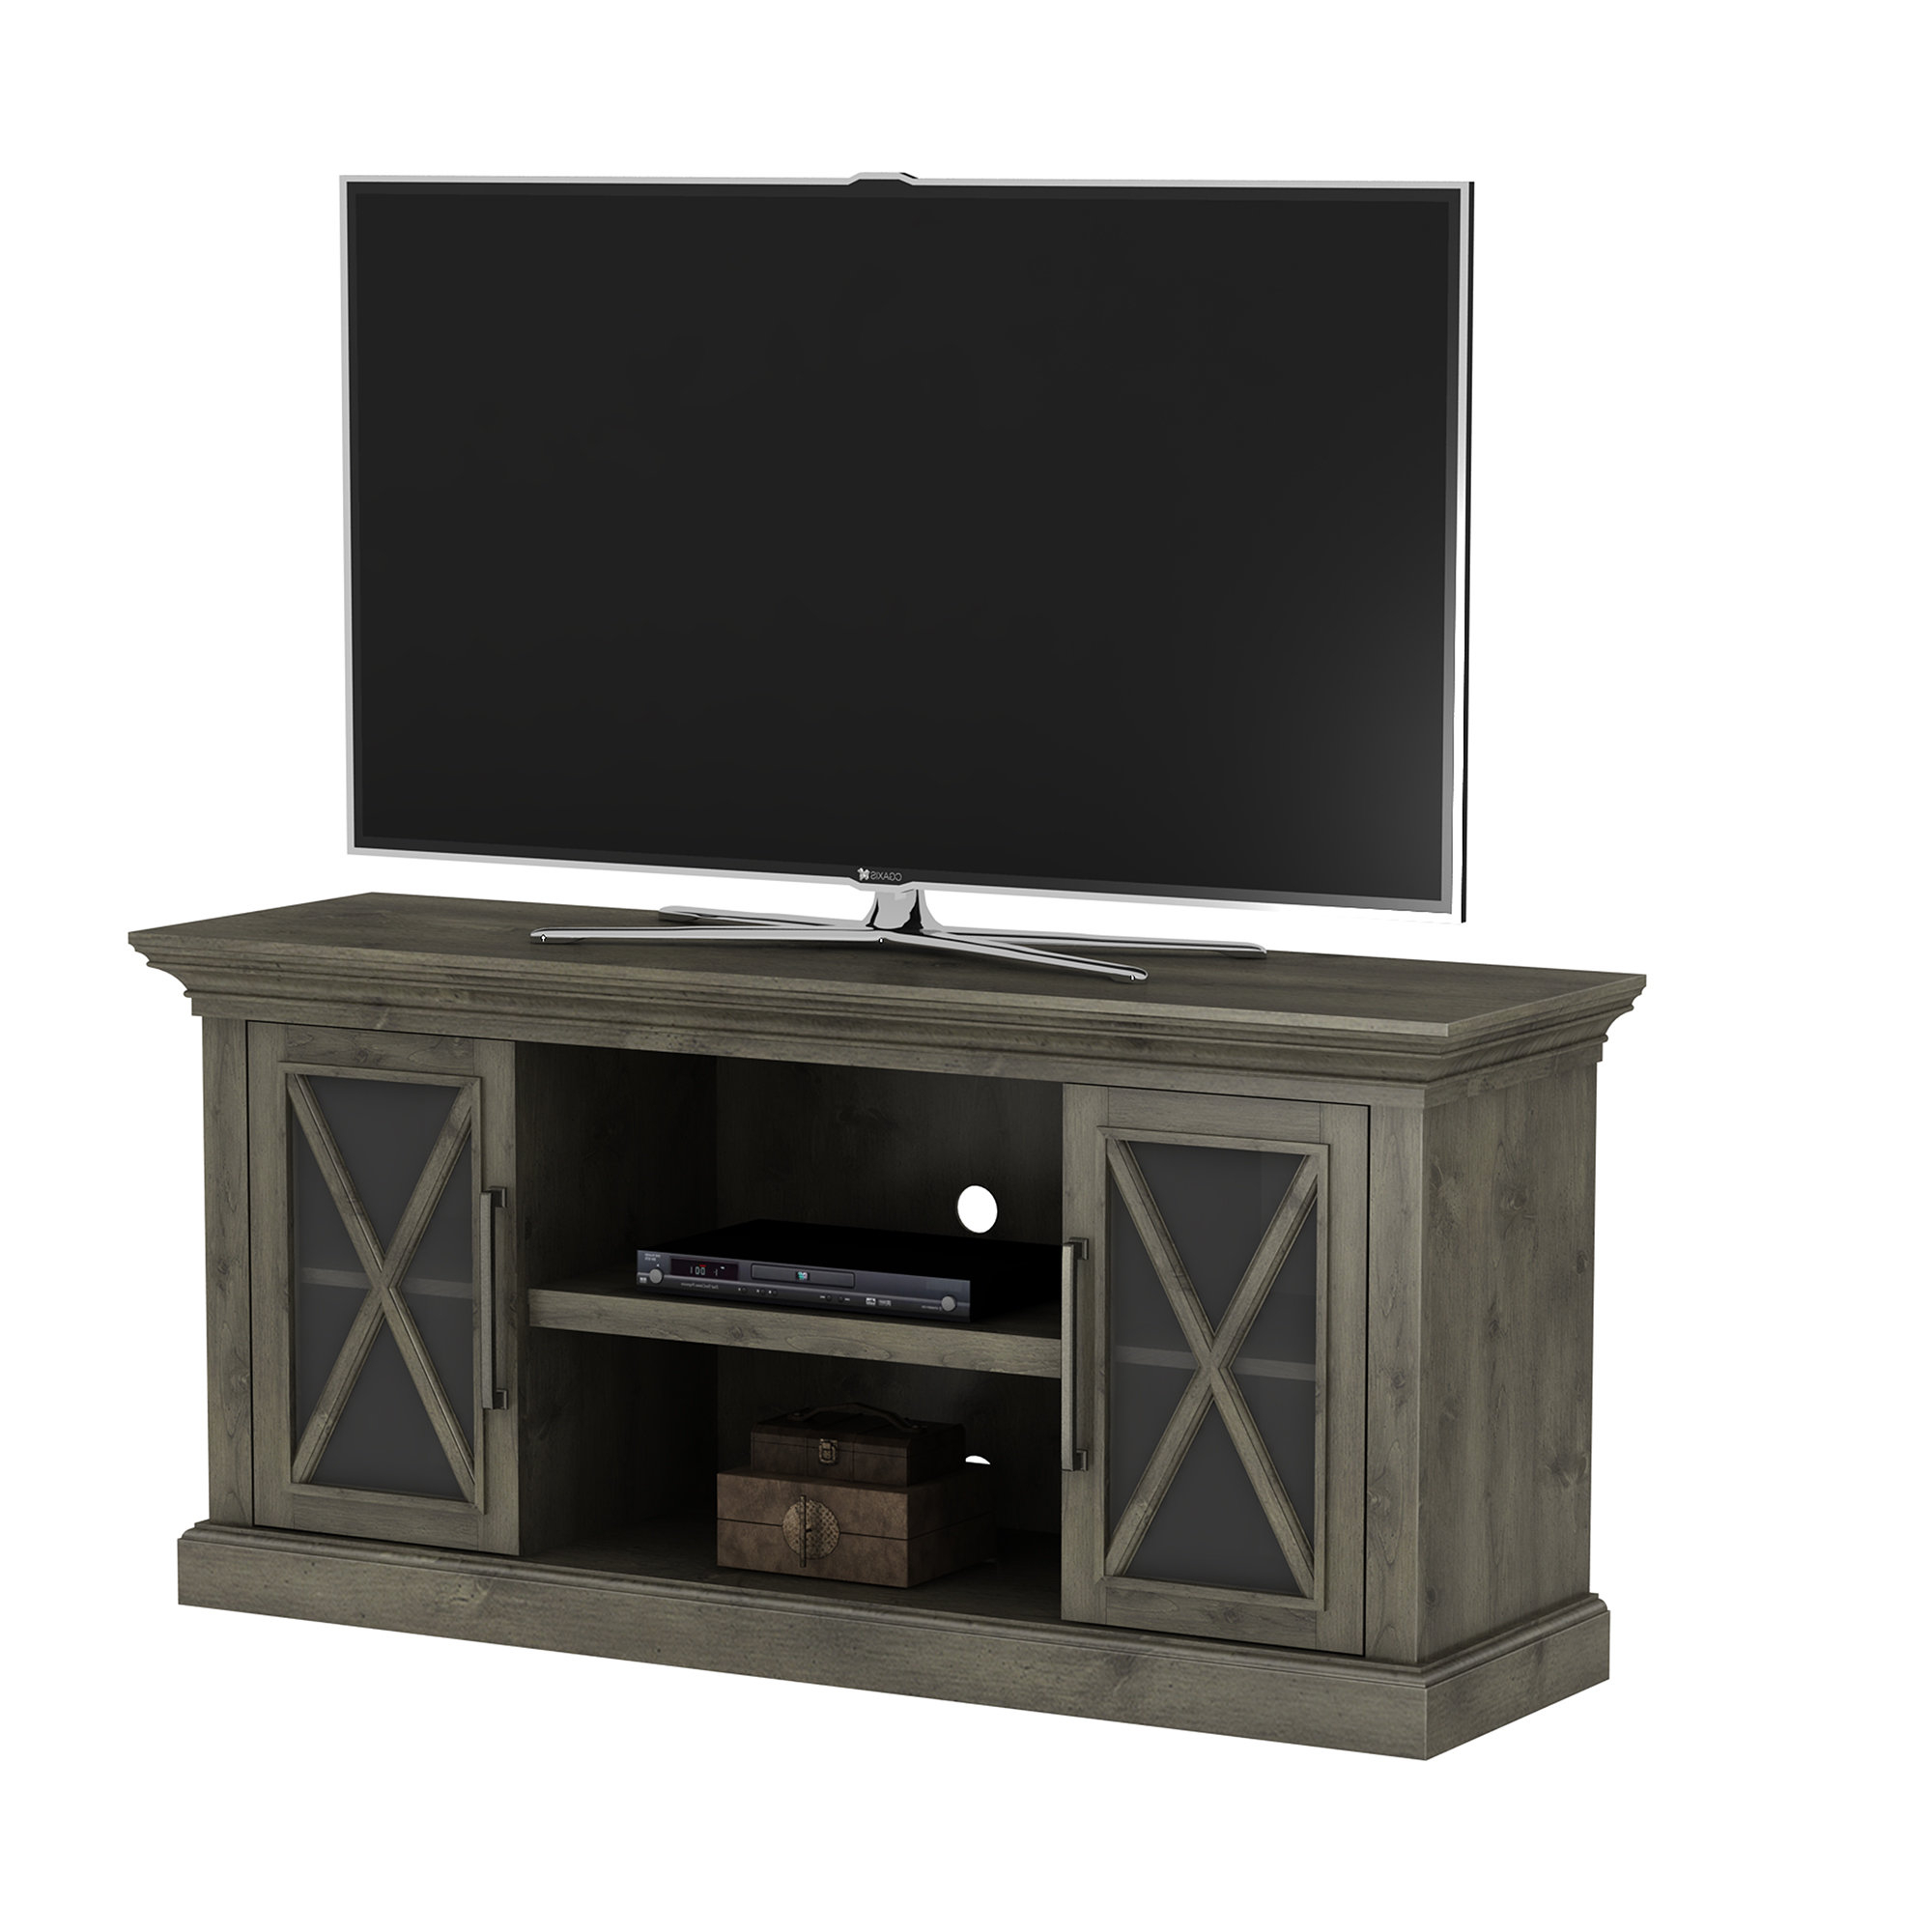 """Loon Peak Blane Tv Stand For Tvs Up To 65""""   Wayfair With Vista 60 Inch Tv Stands (View 4 of 20)"""